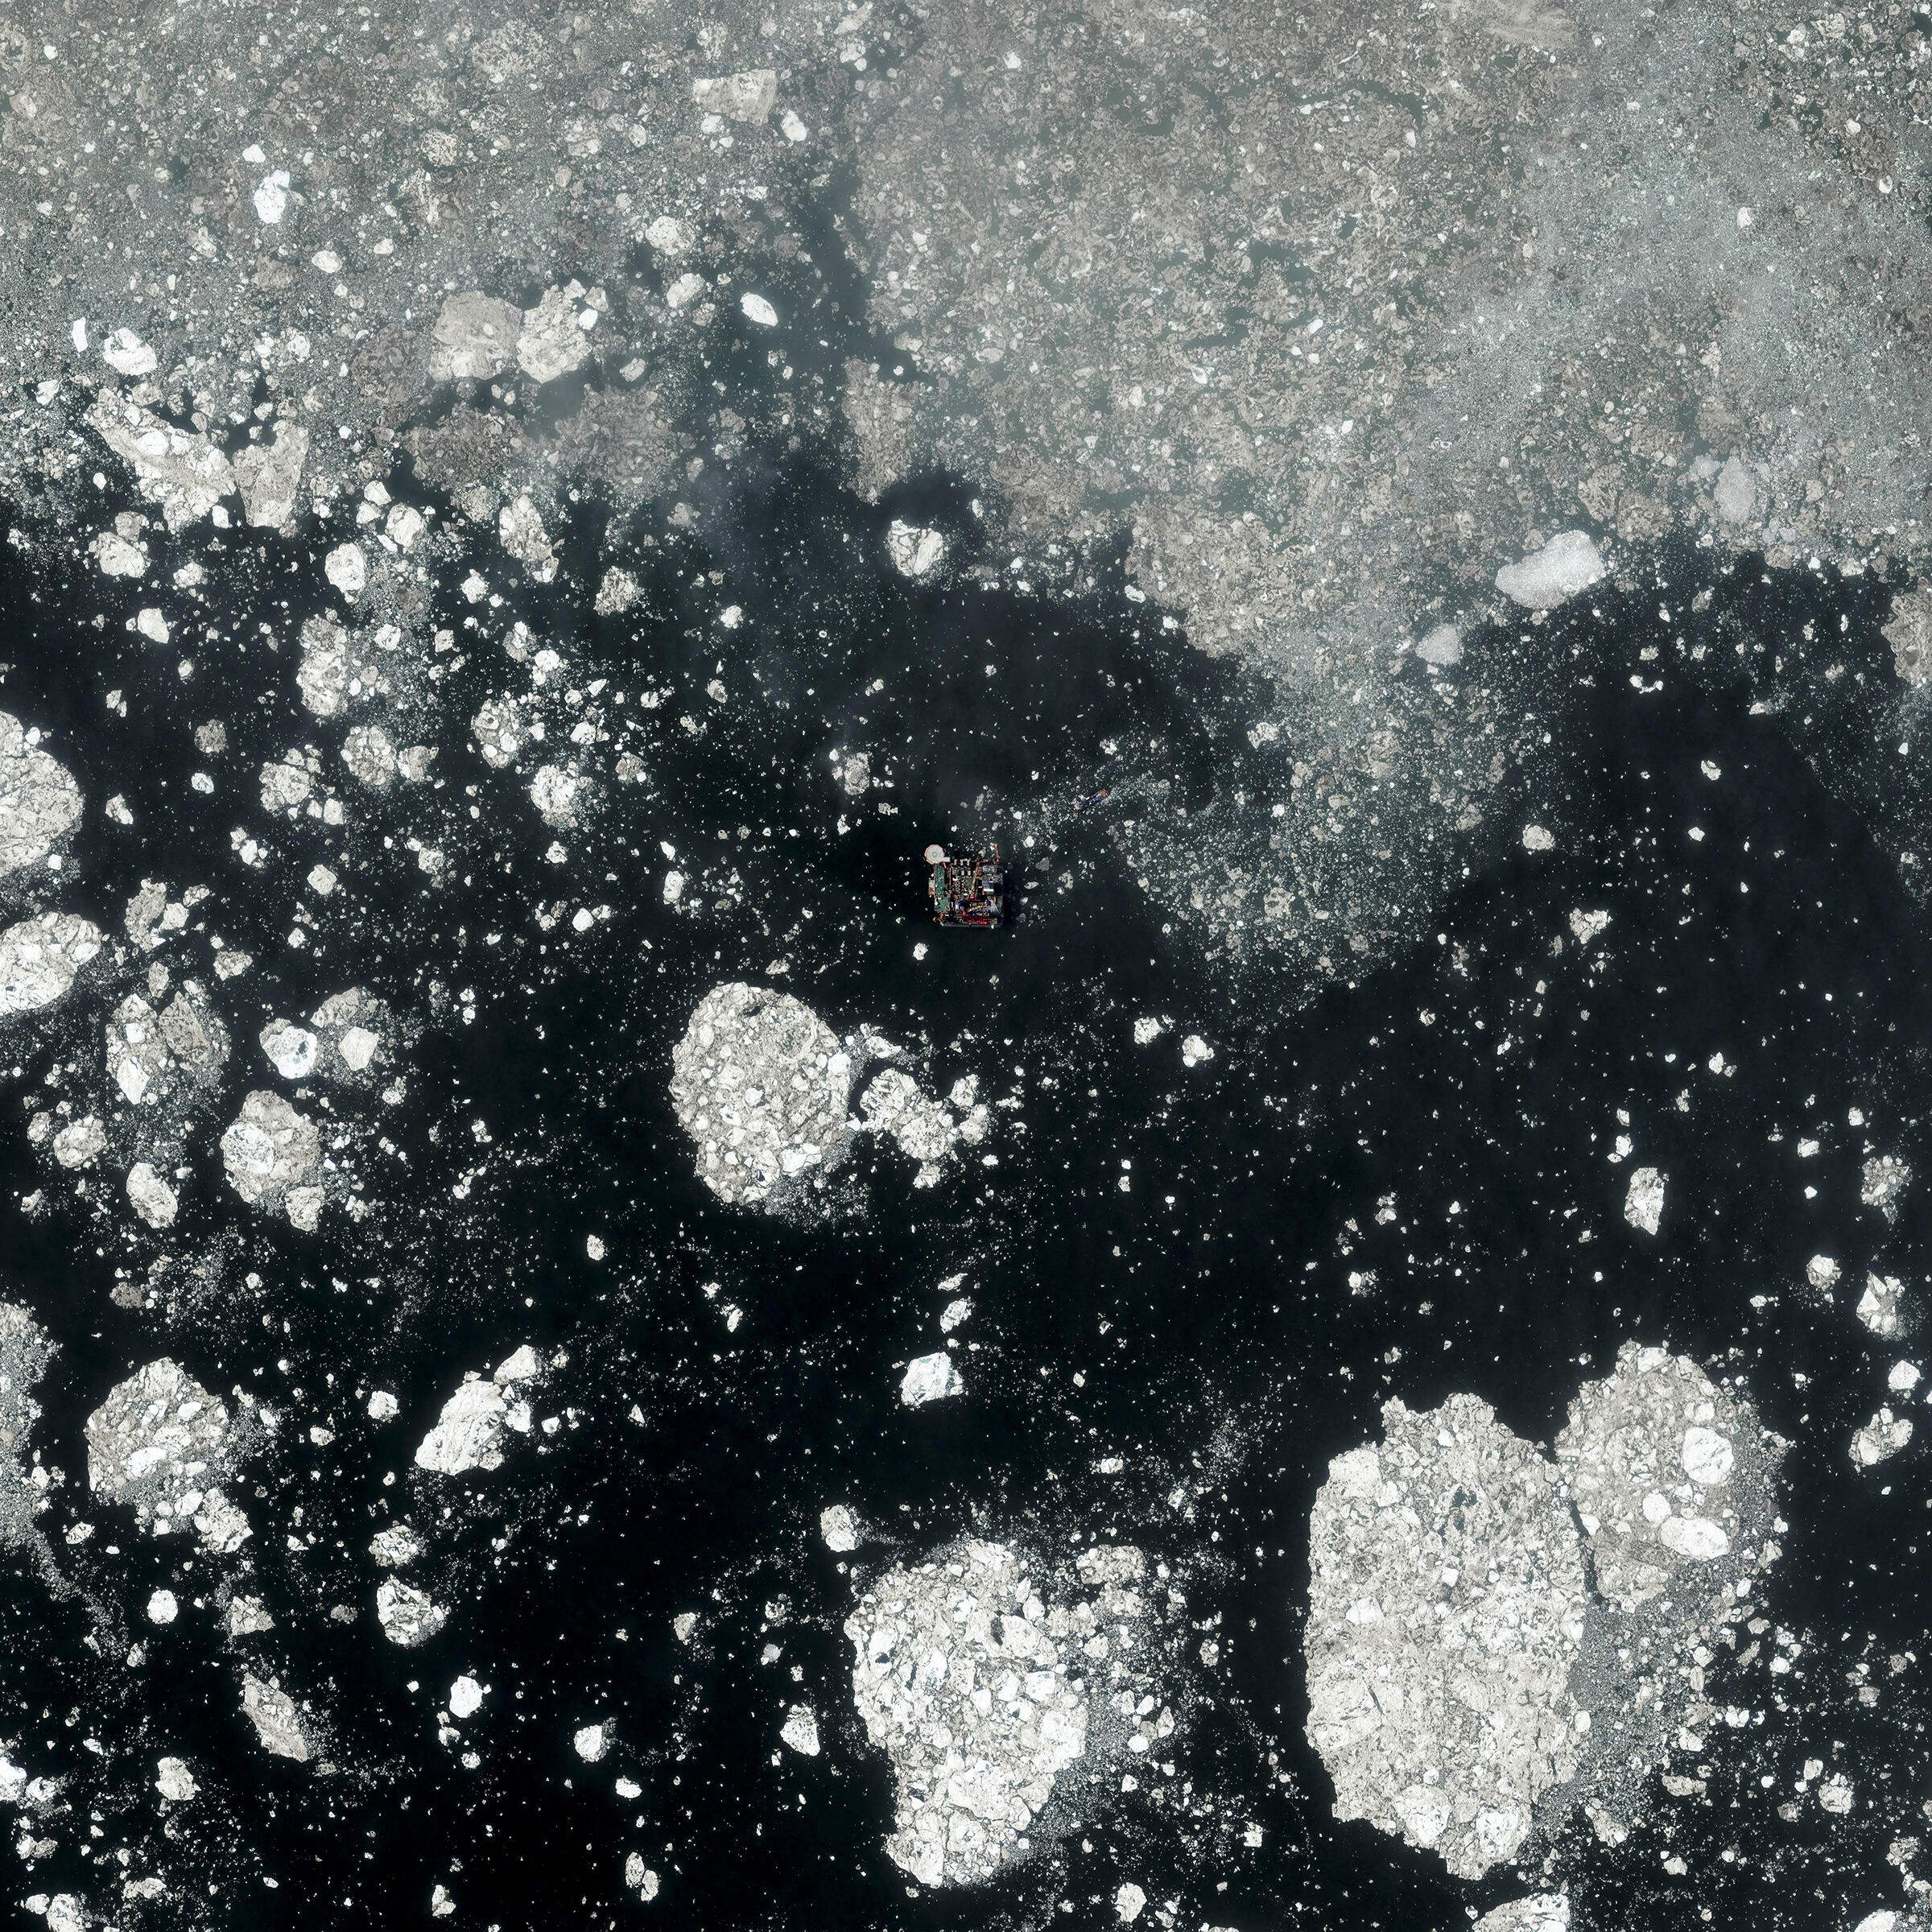 An oil platform at the Prirazlomnoye field in the Pechora Sea, off western Siberia. 6/28/2014. Daily Overview | Satellite images (c) 2015, DigitalGlobe, Inc.